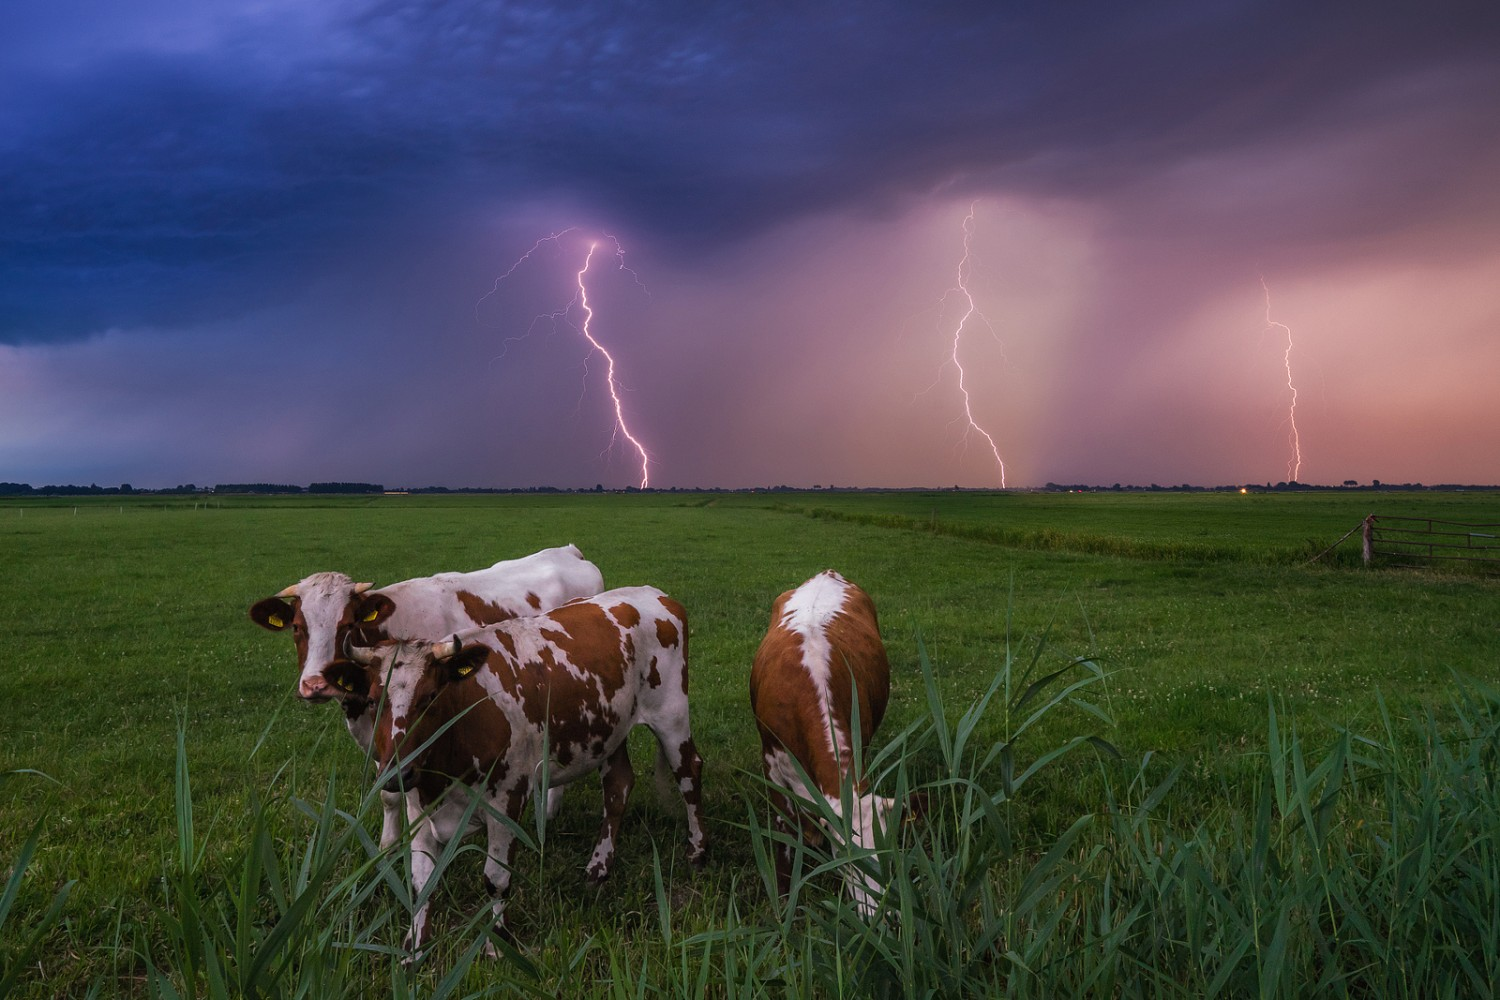 The Cow(s) Before the Storm, A Photo Story